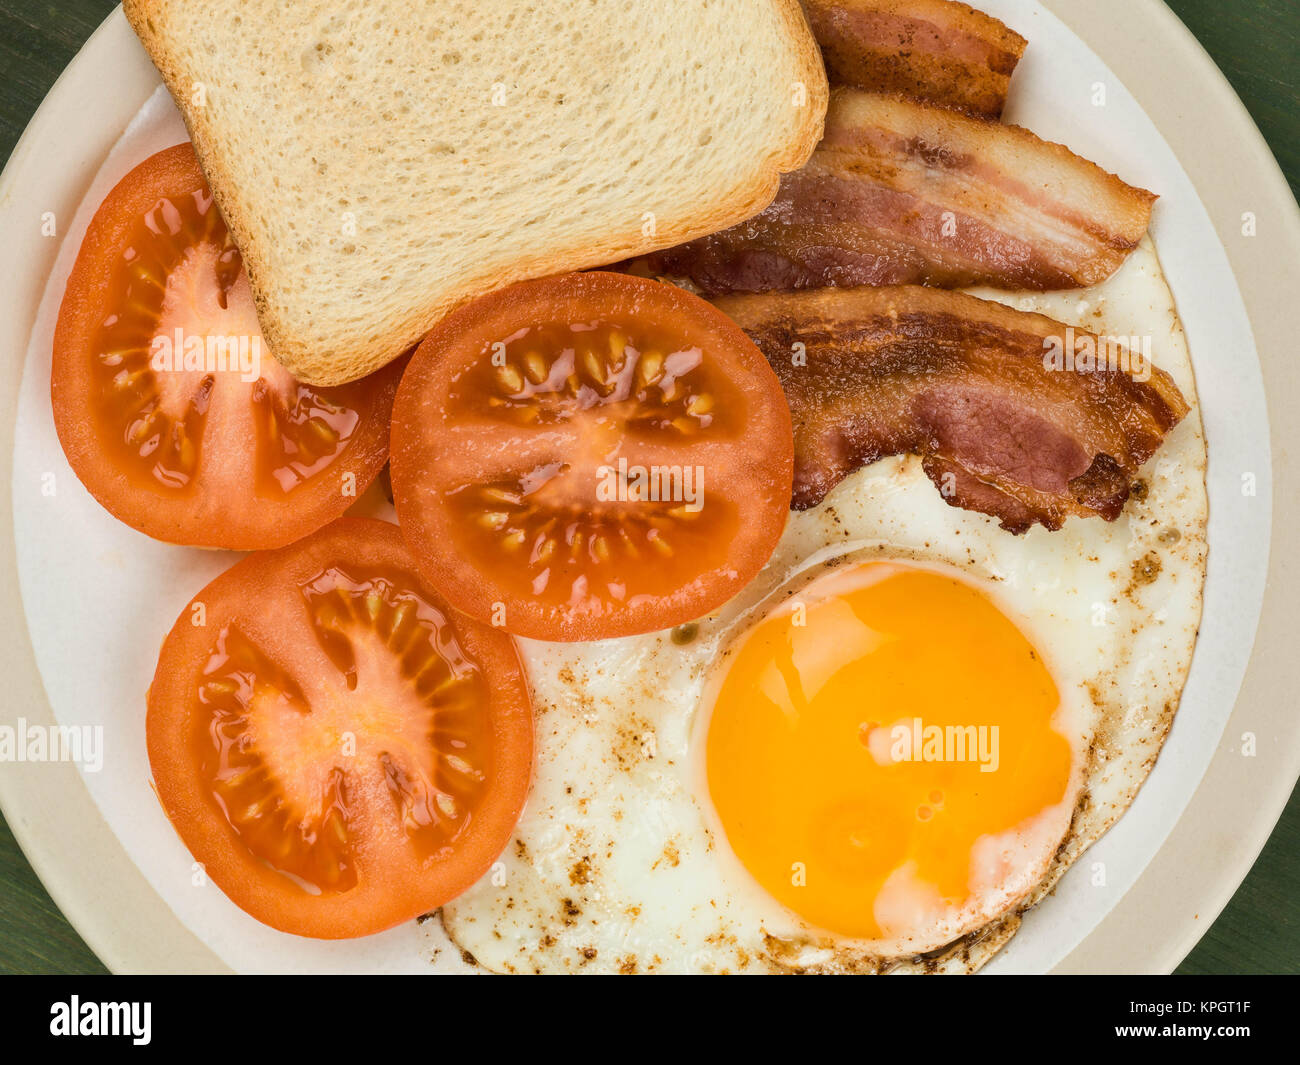 Bacon Egg and Tomato With French Toast Breakfast Food Against a Green Background Stock Photo